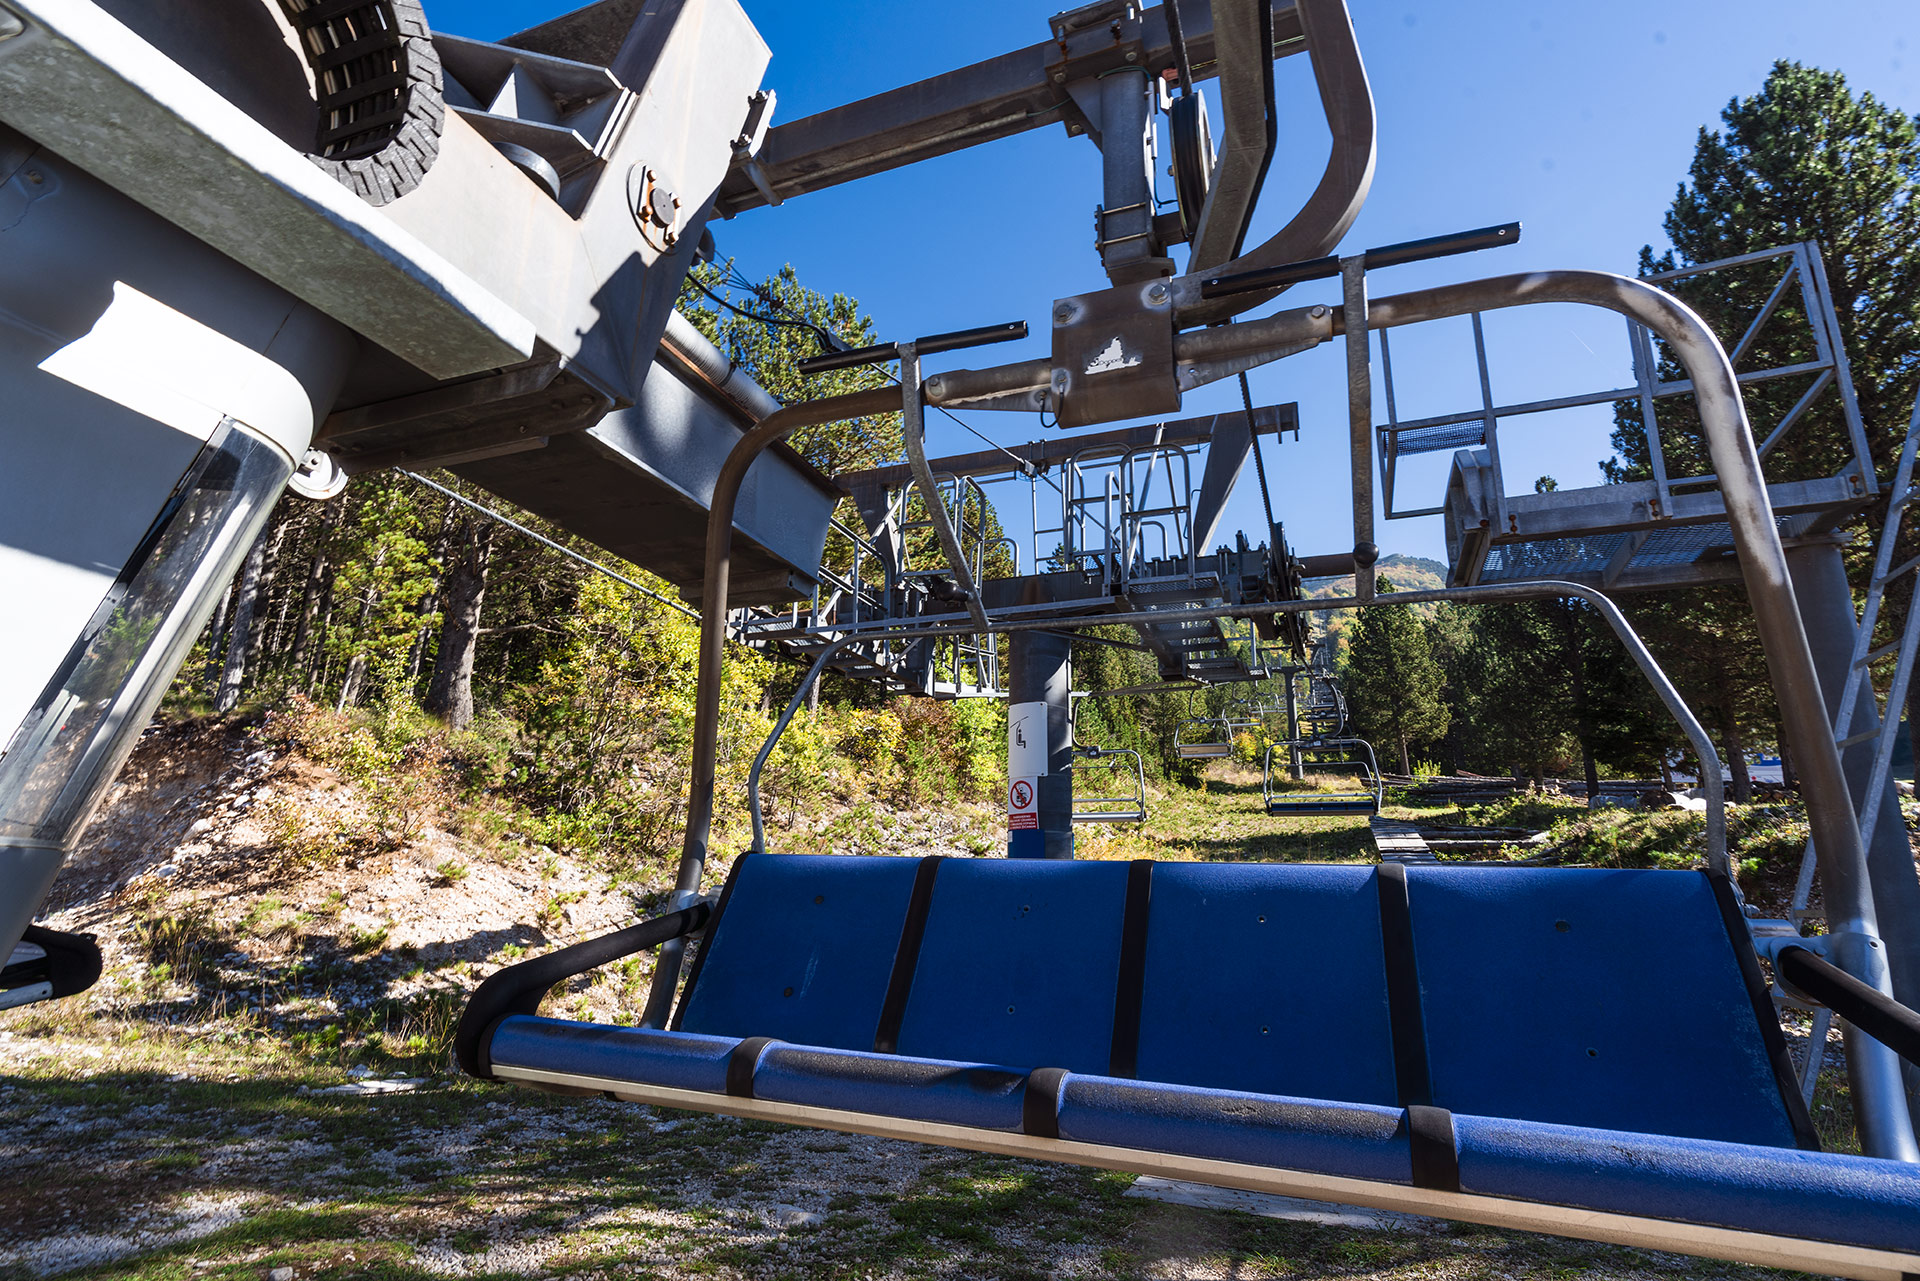 Ski lift at Blidinje NP